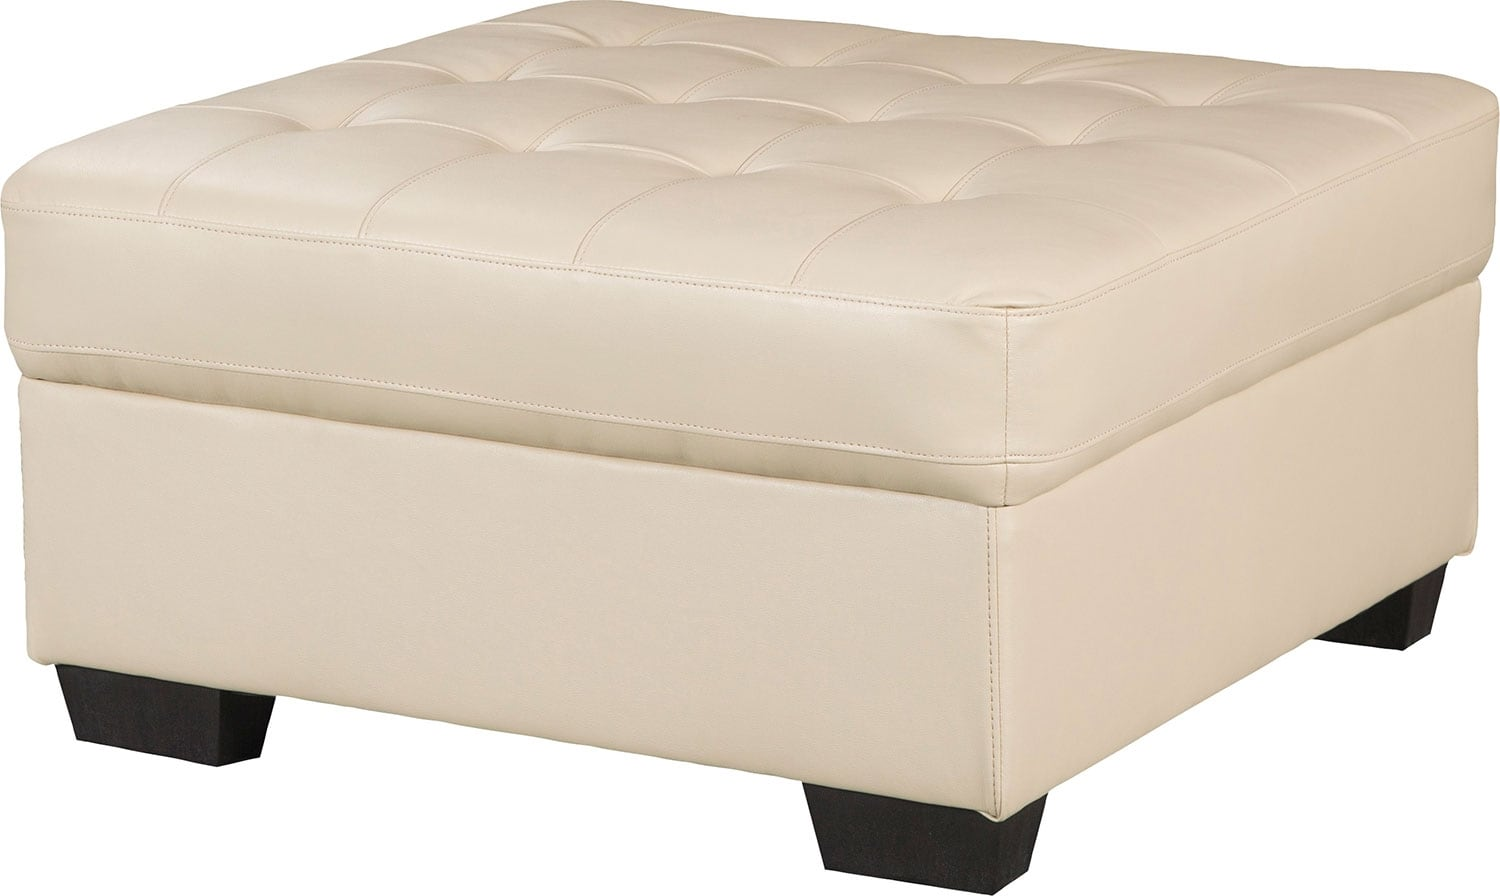 Living Room Furniture - Tobi Bonded Leather Ottoman - Cream